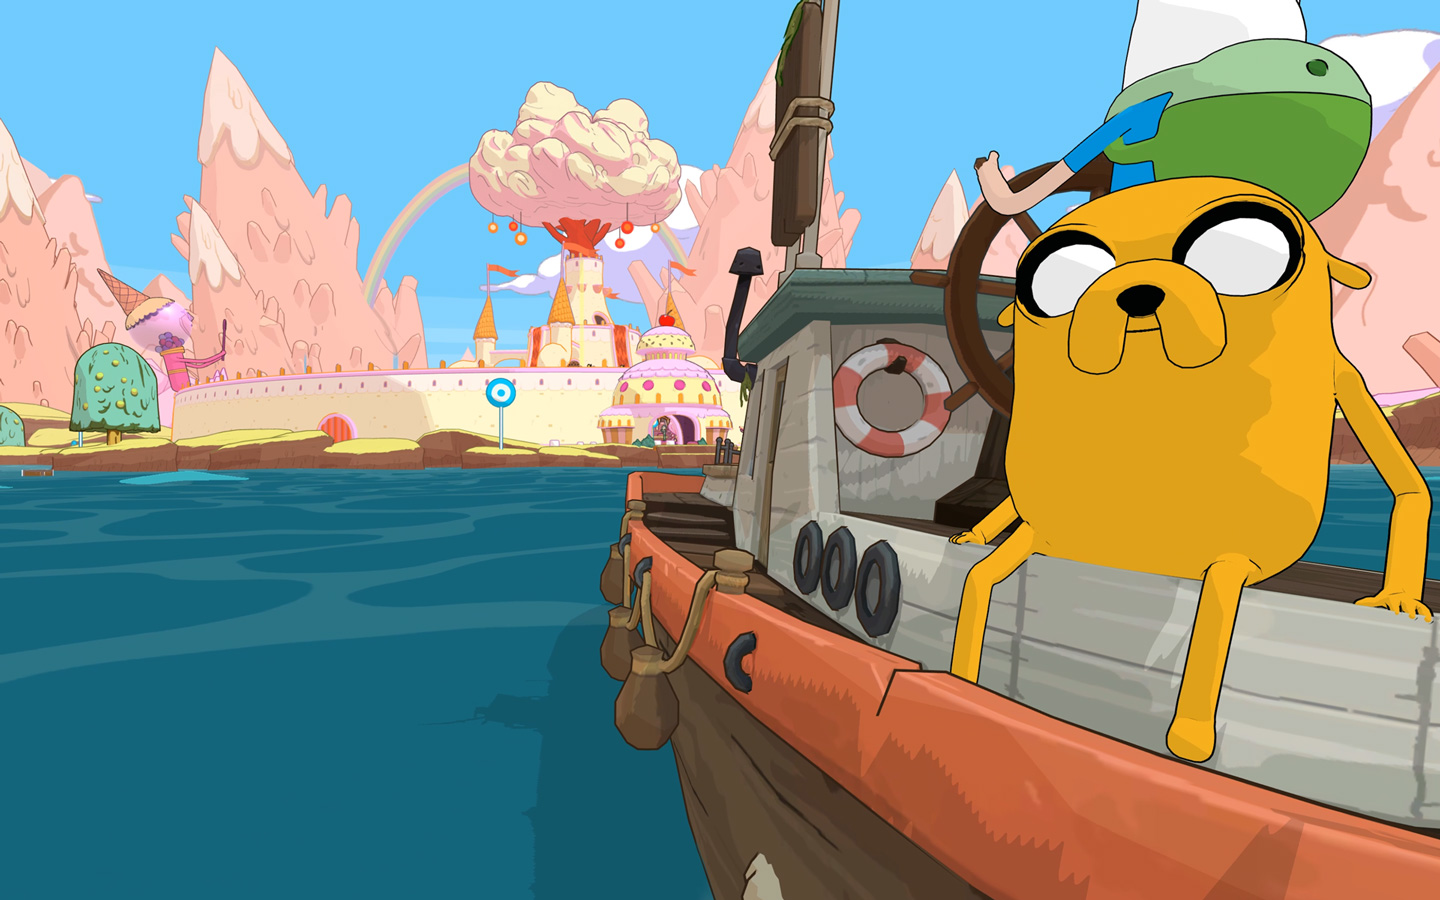 Adventure Time: Pirates of the Enchiridion Wallpaper in 1440x900